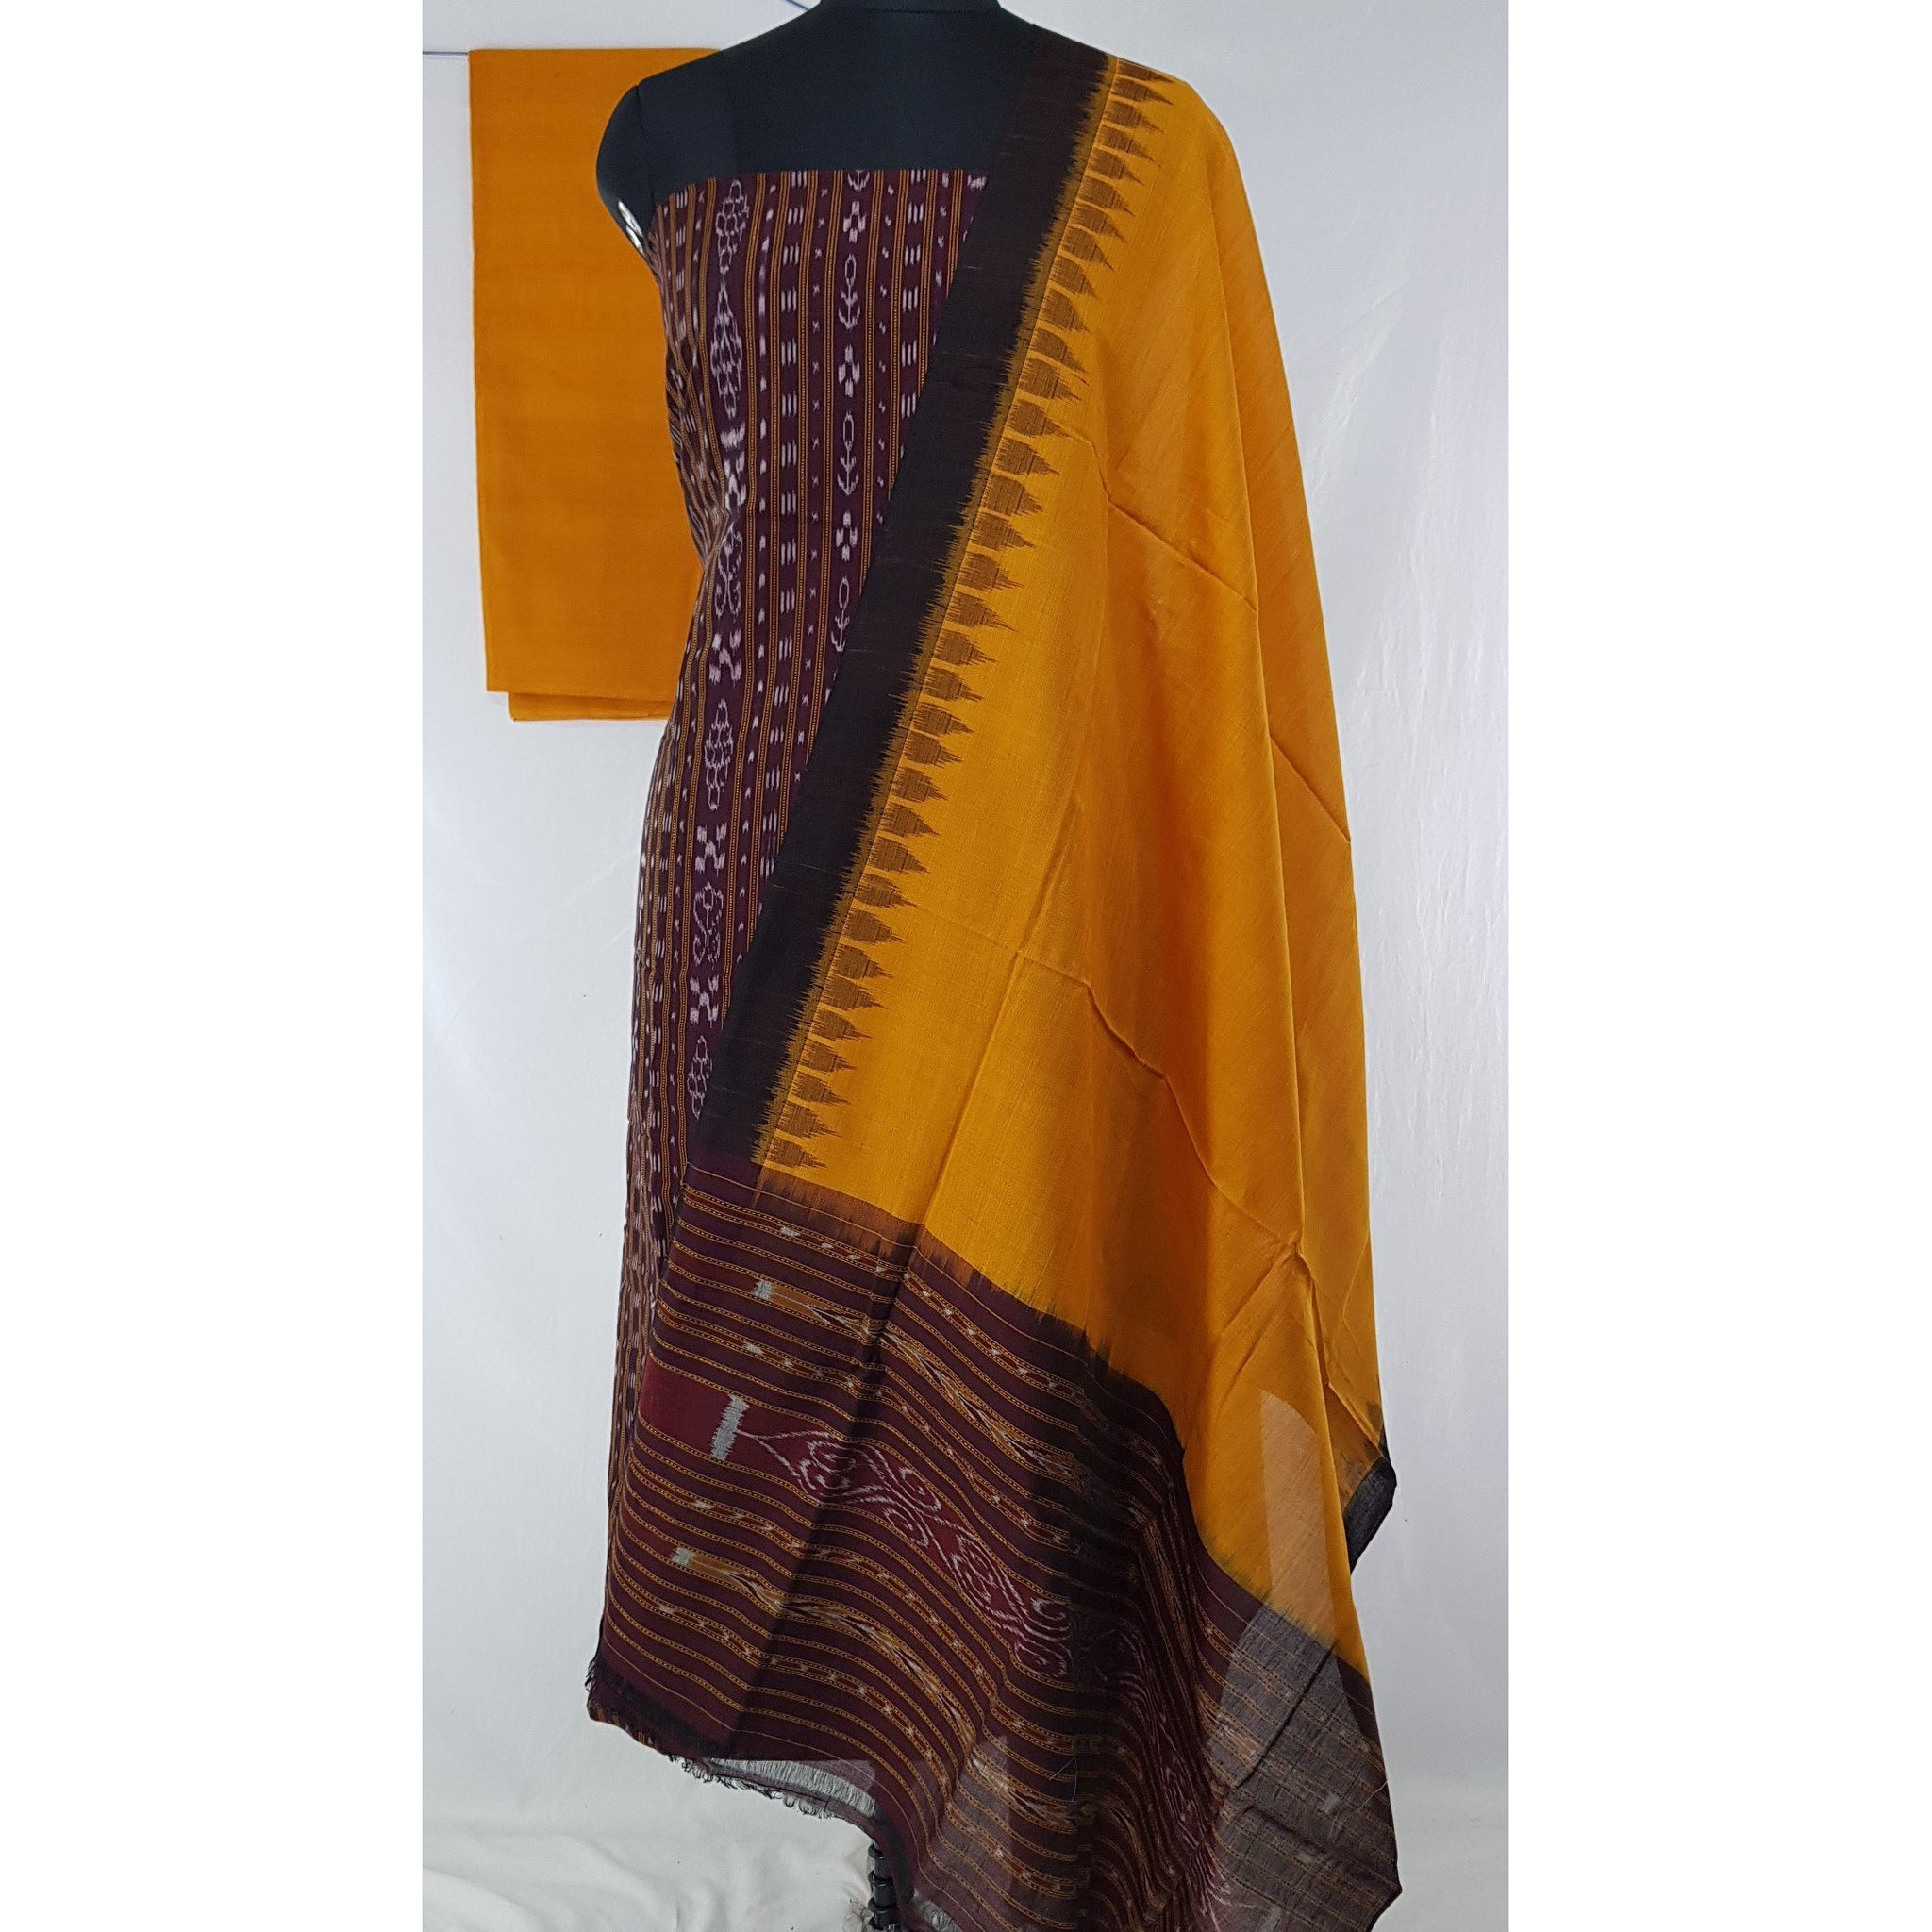 Sambalpuri Handloom Ikat cotton salwar set with temple border dupatta - Vinshika